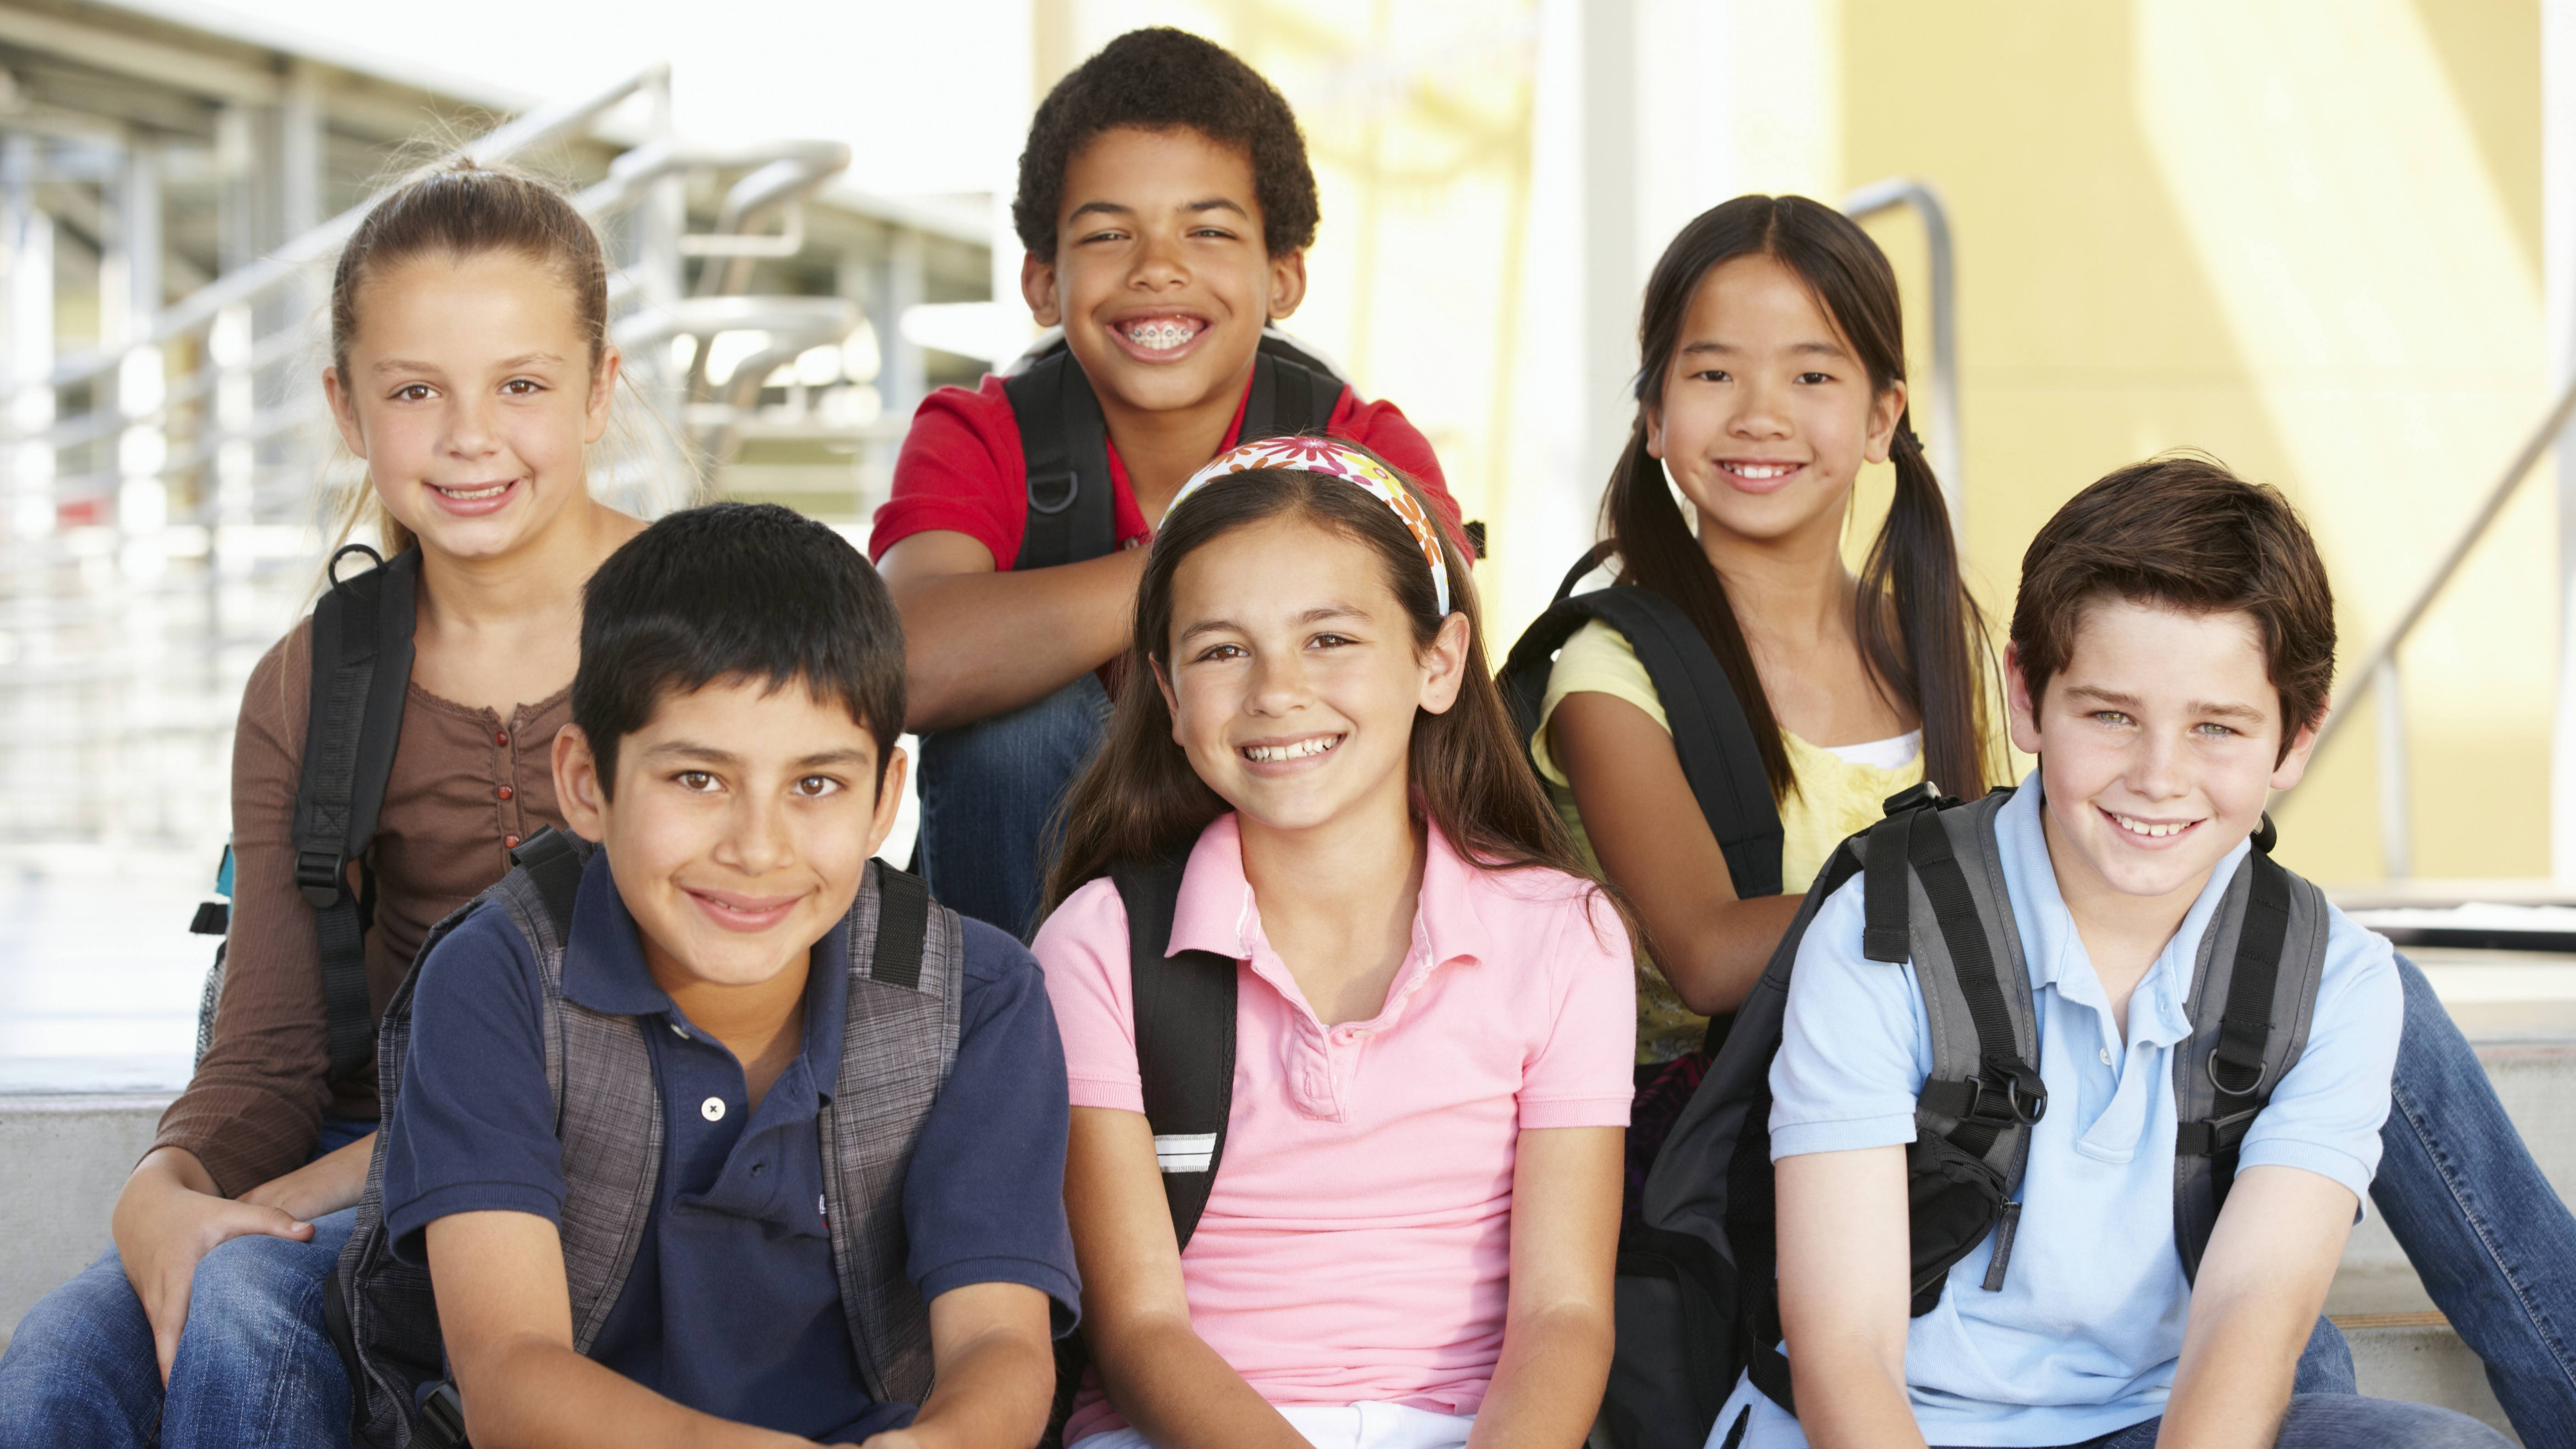 young school children smiling and wearing backpacks, sitting on stairs together